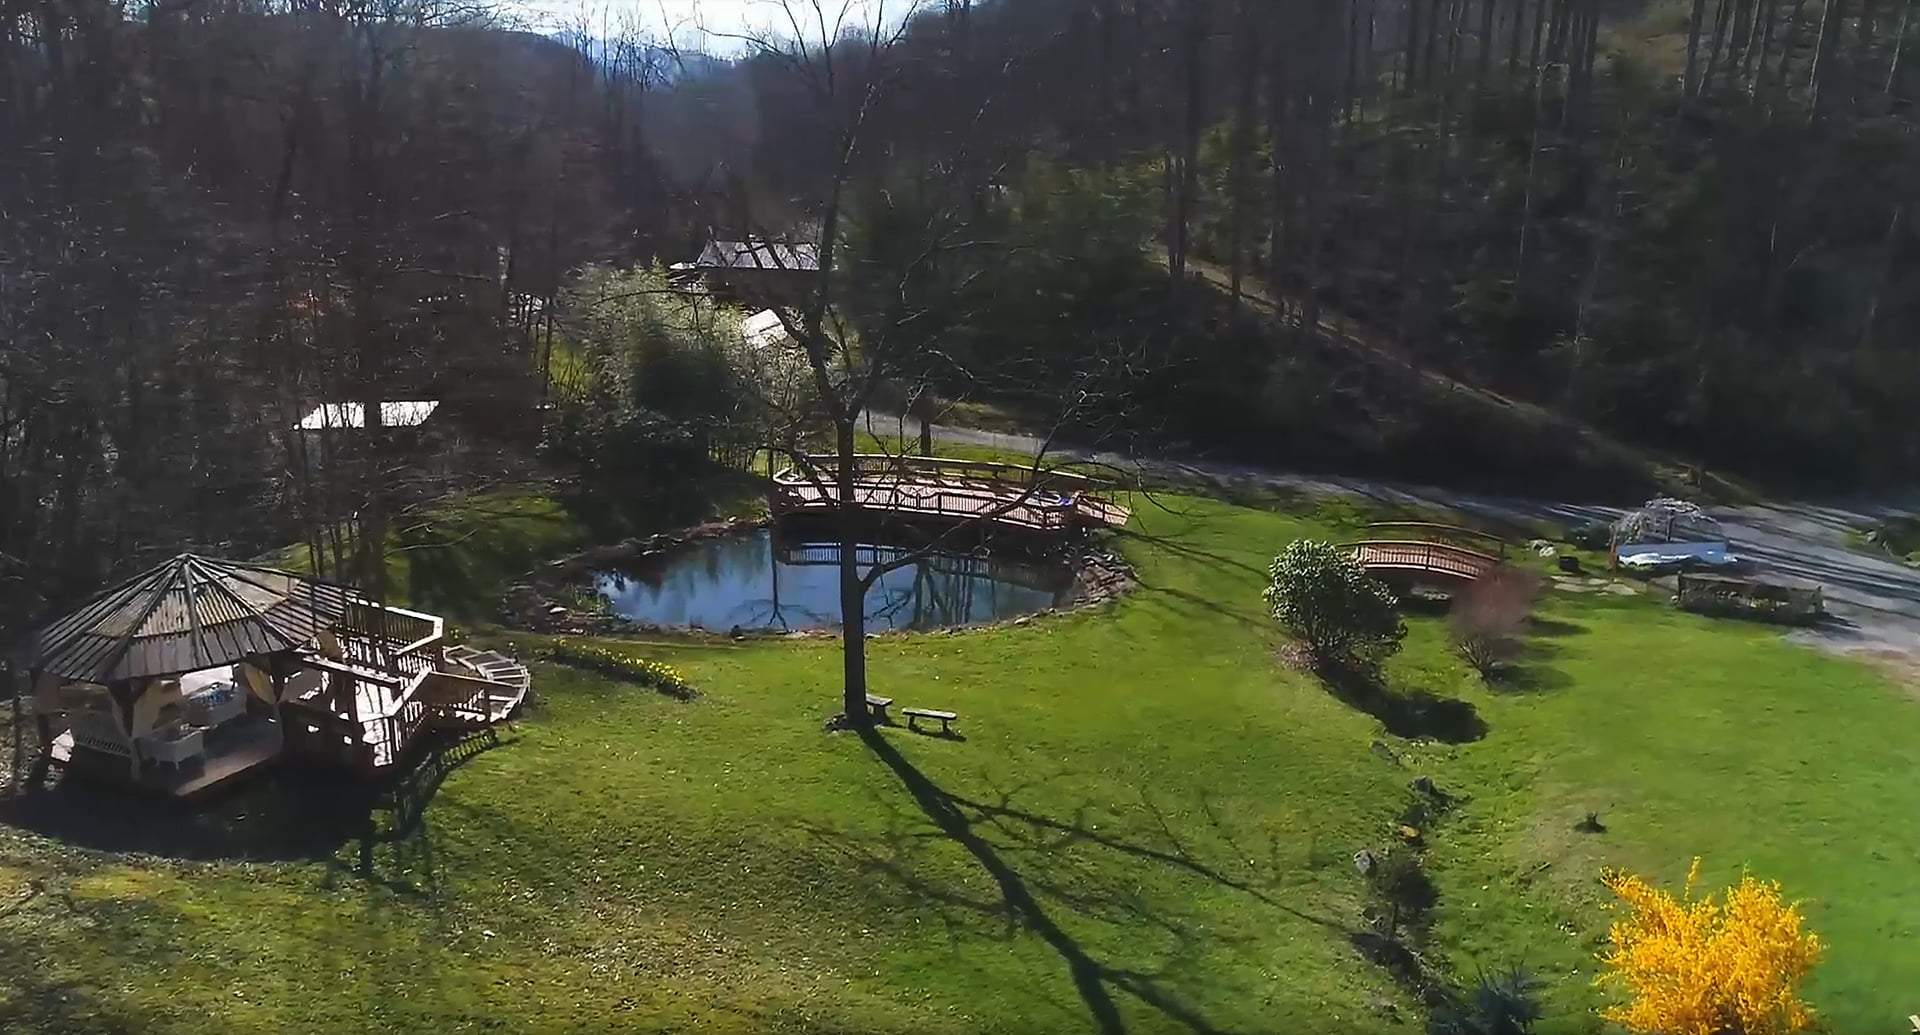 NC Mountain Retreat Center and Land for sale